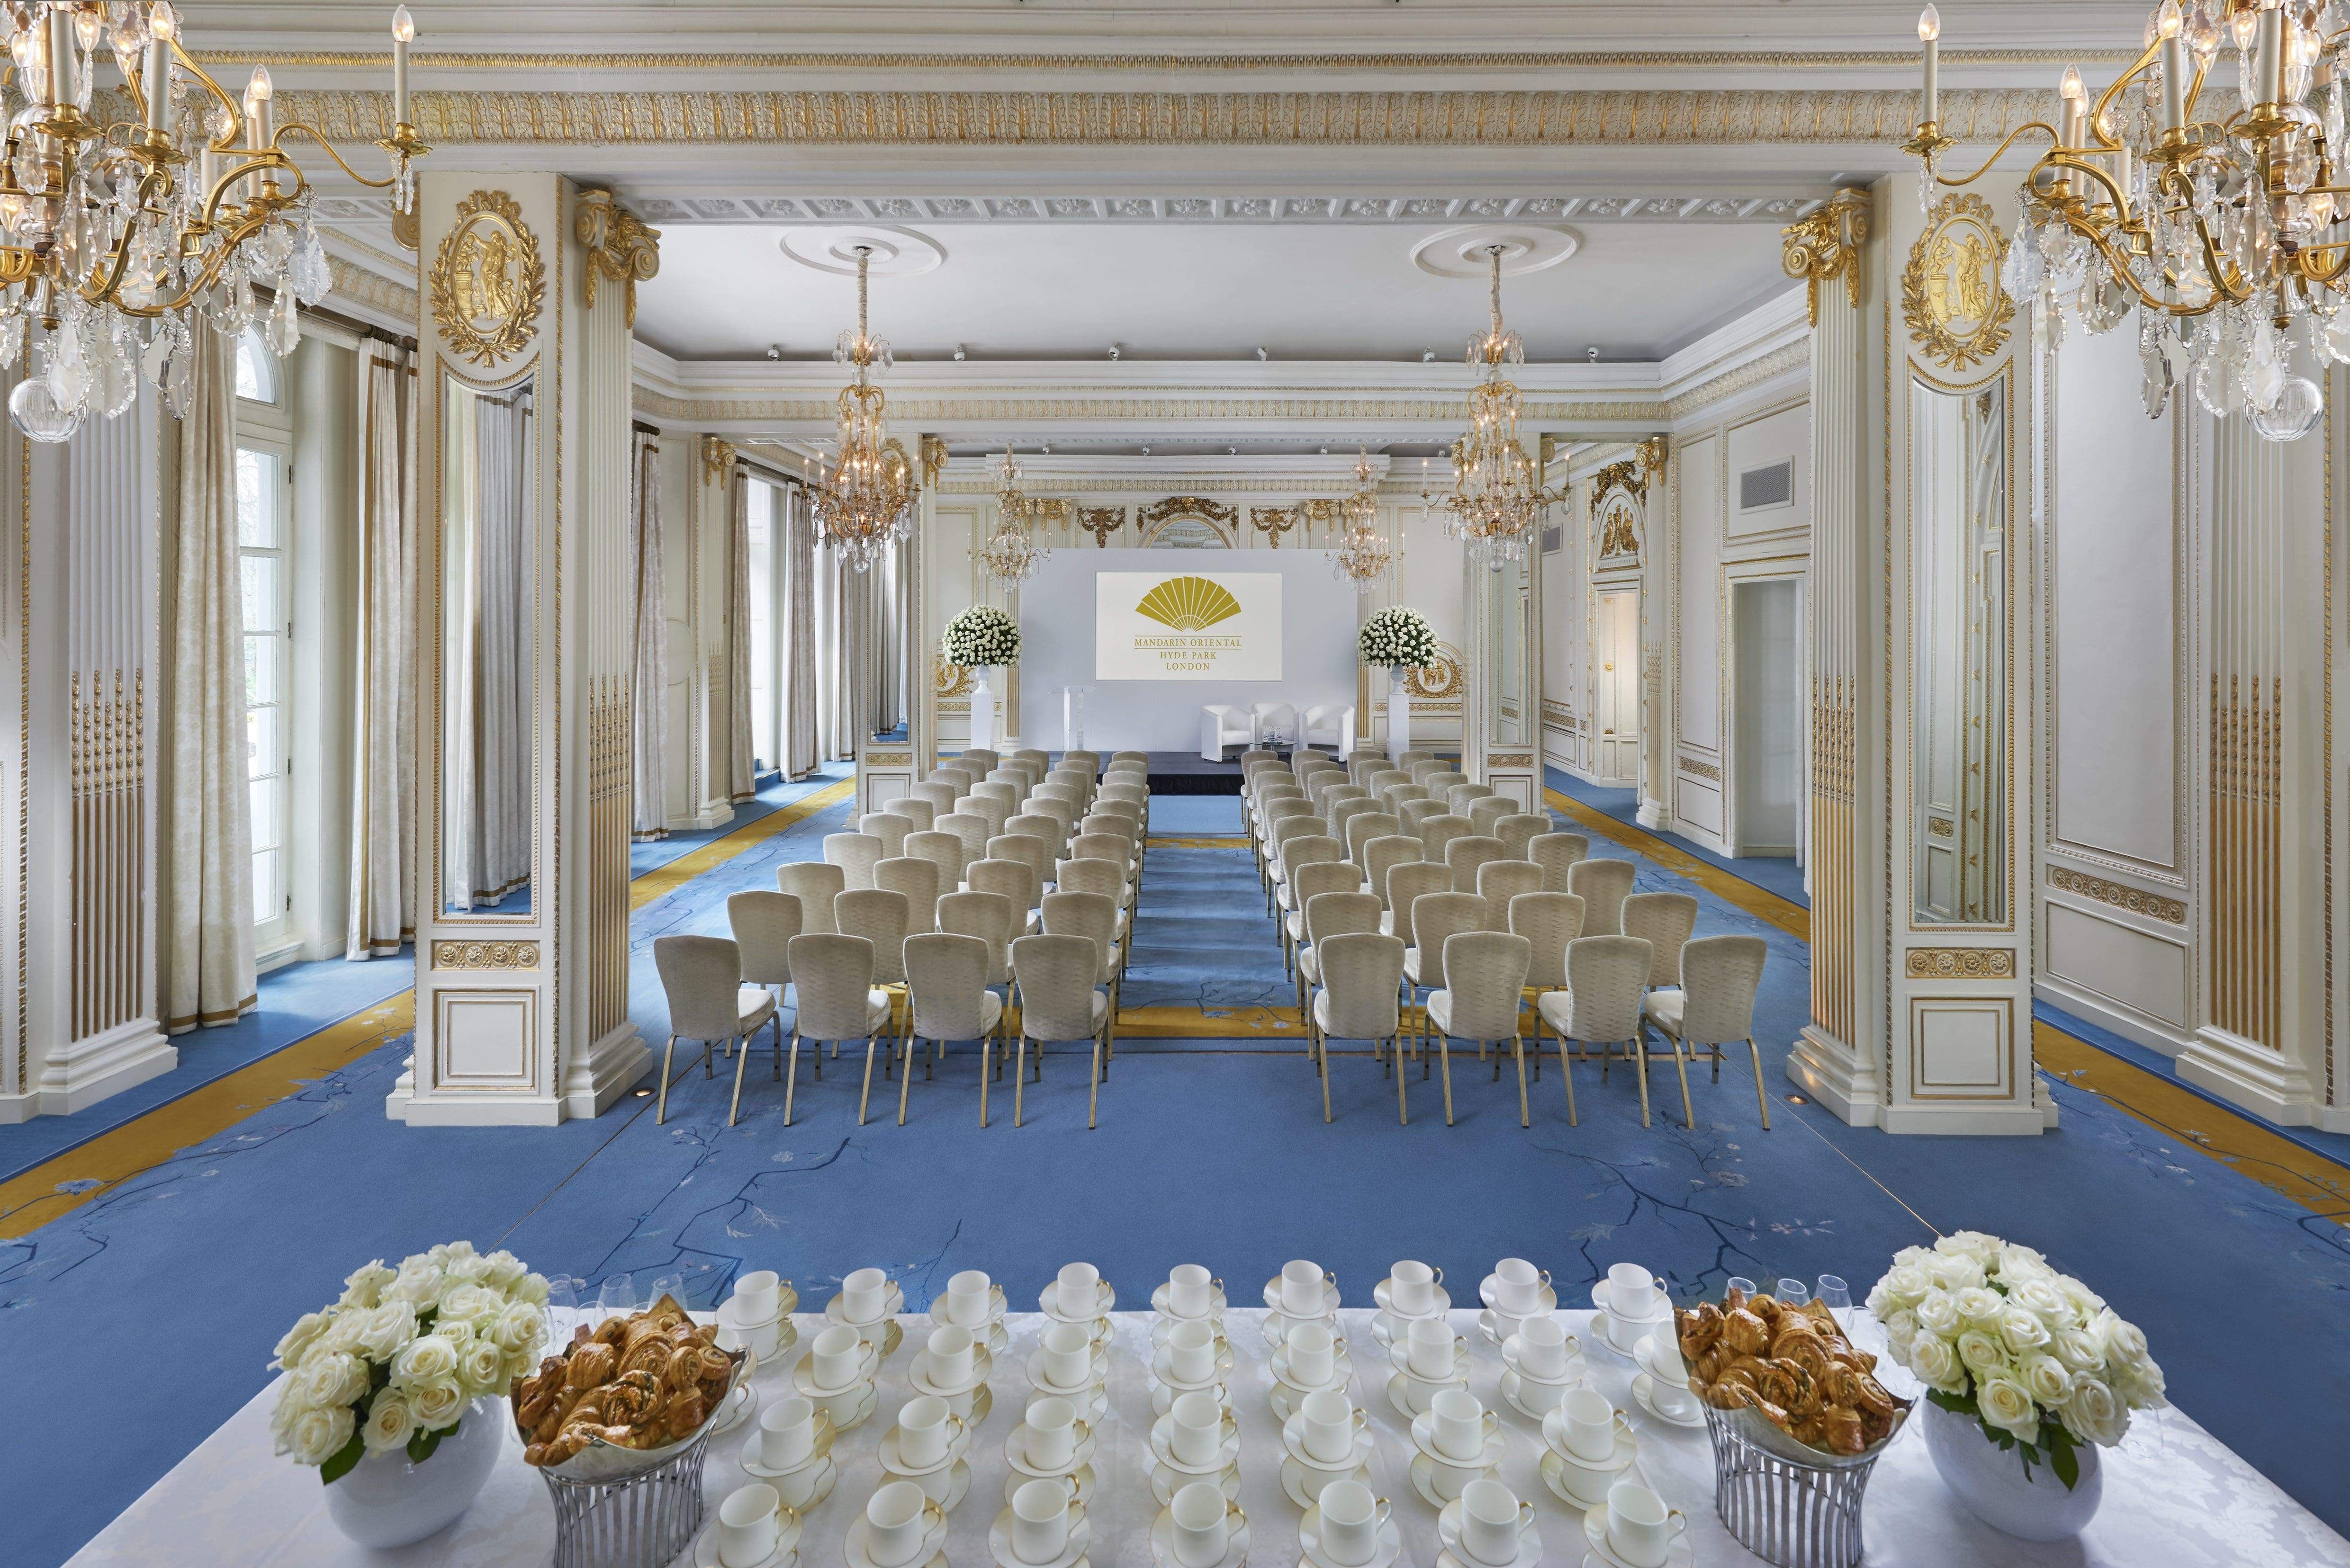 Eventopedia Event Venues Meeting Rooms & Planning